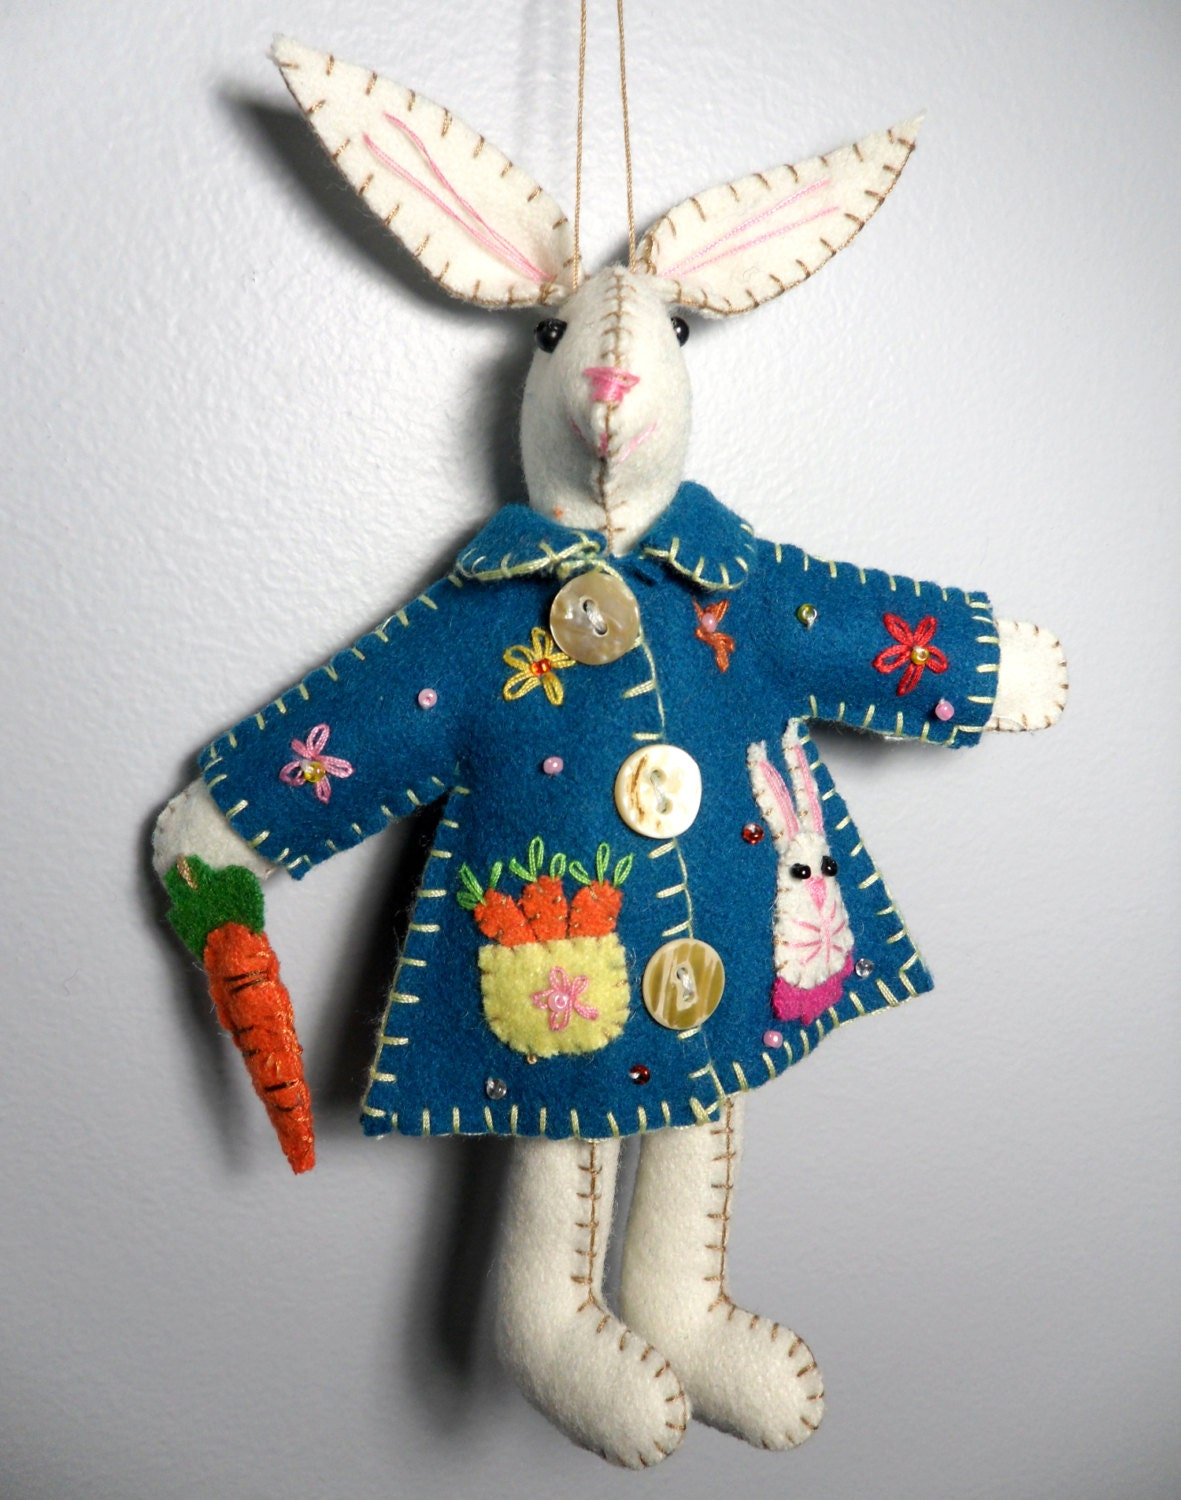 Wool Felt Bunny Plush Ornament Blue Coat Bunny with beautiful carrot basket pattern design Easter Spring Ornament 7.5""